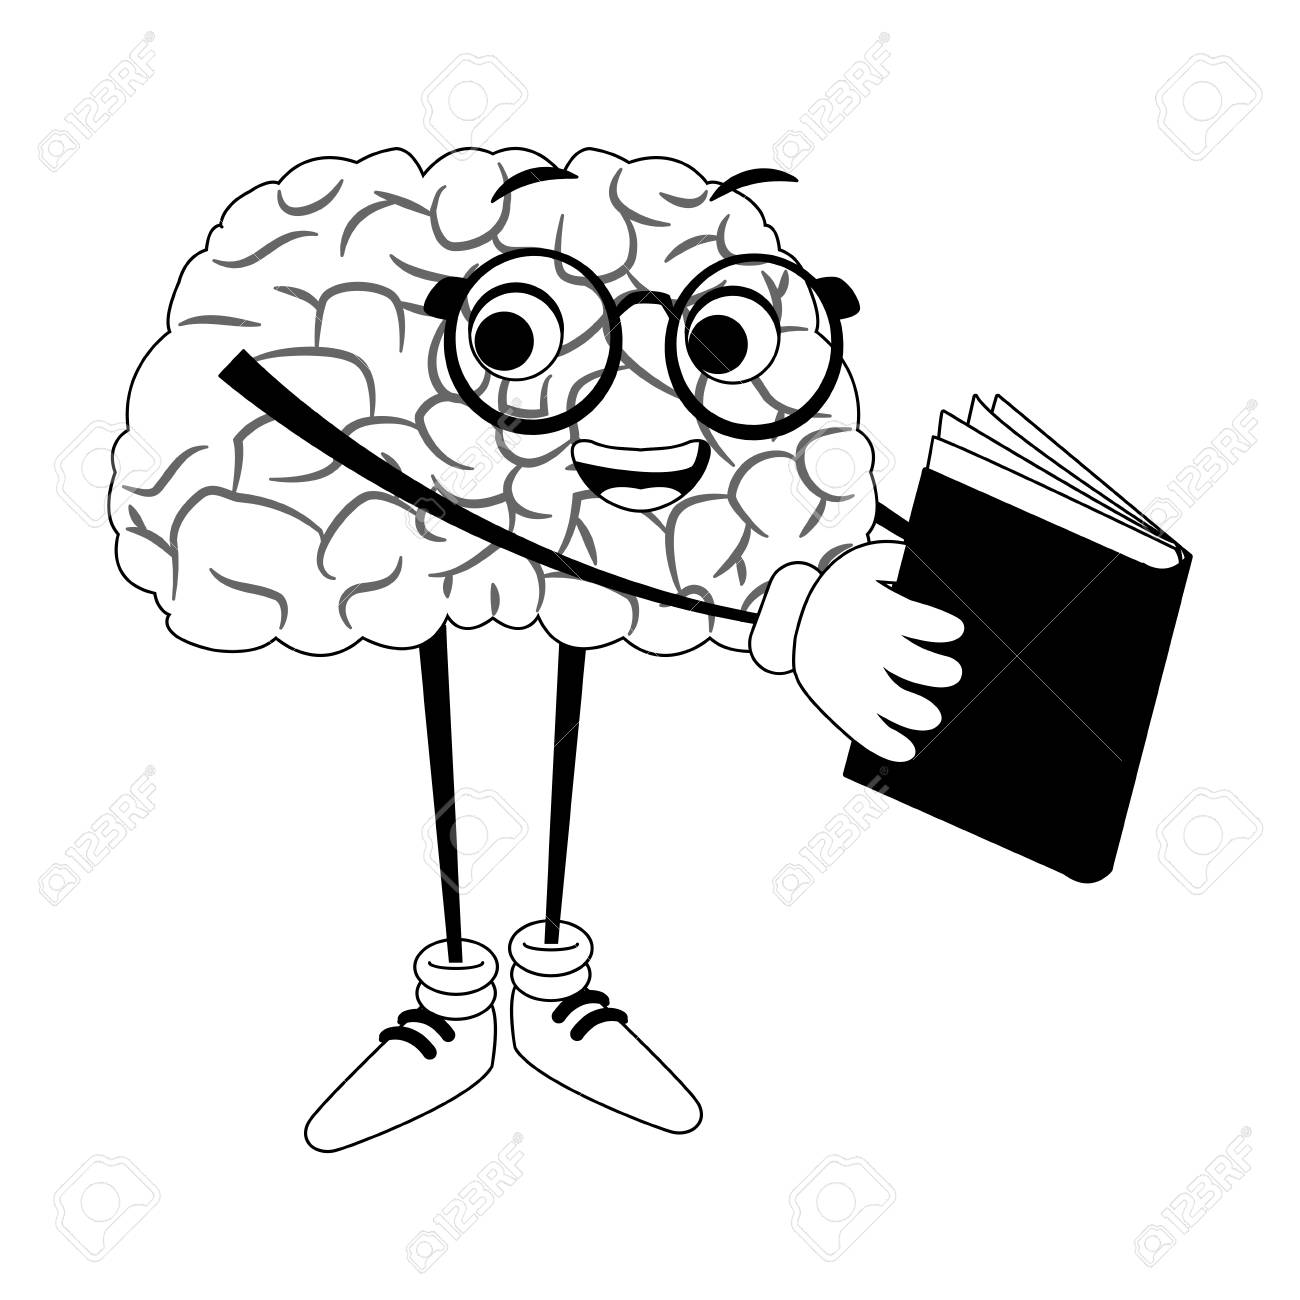 funny brain cartoon reading a book vector illustration graphic royalty free cliparts vectors and stock illustration image 101268741 funny brain cartoon reading a book vector illustration graphic